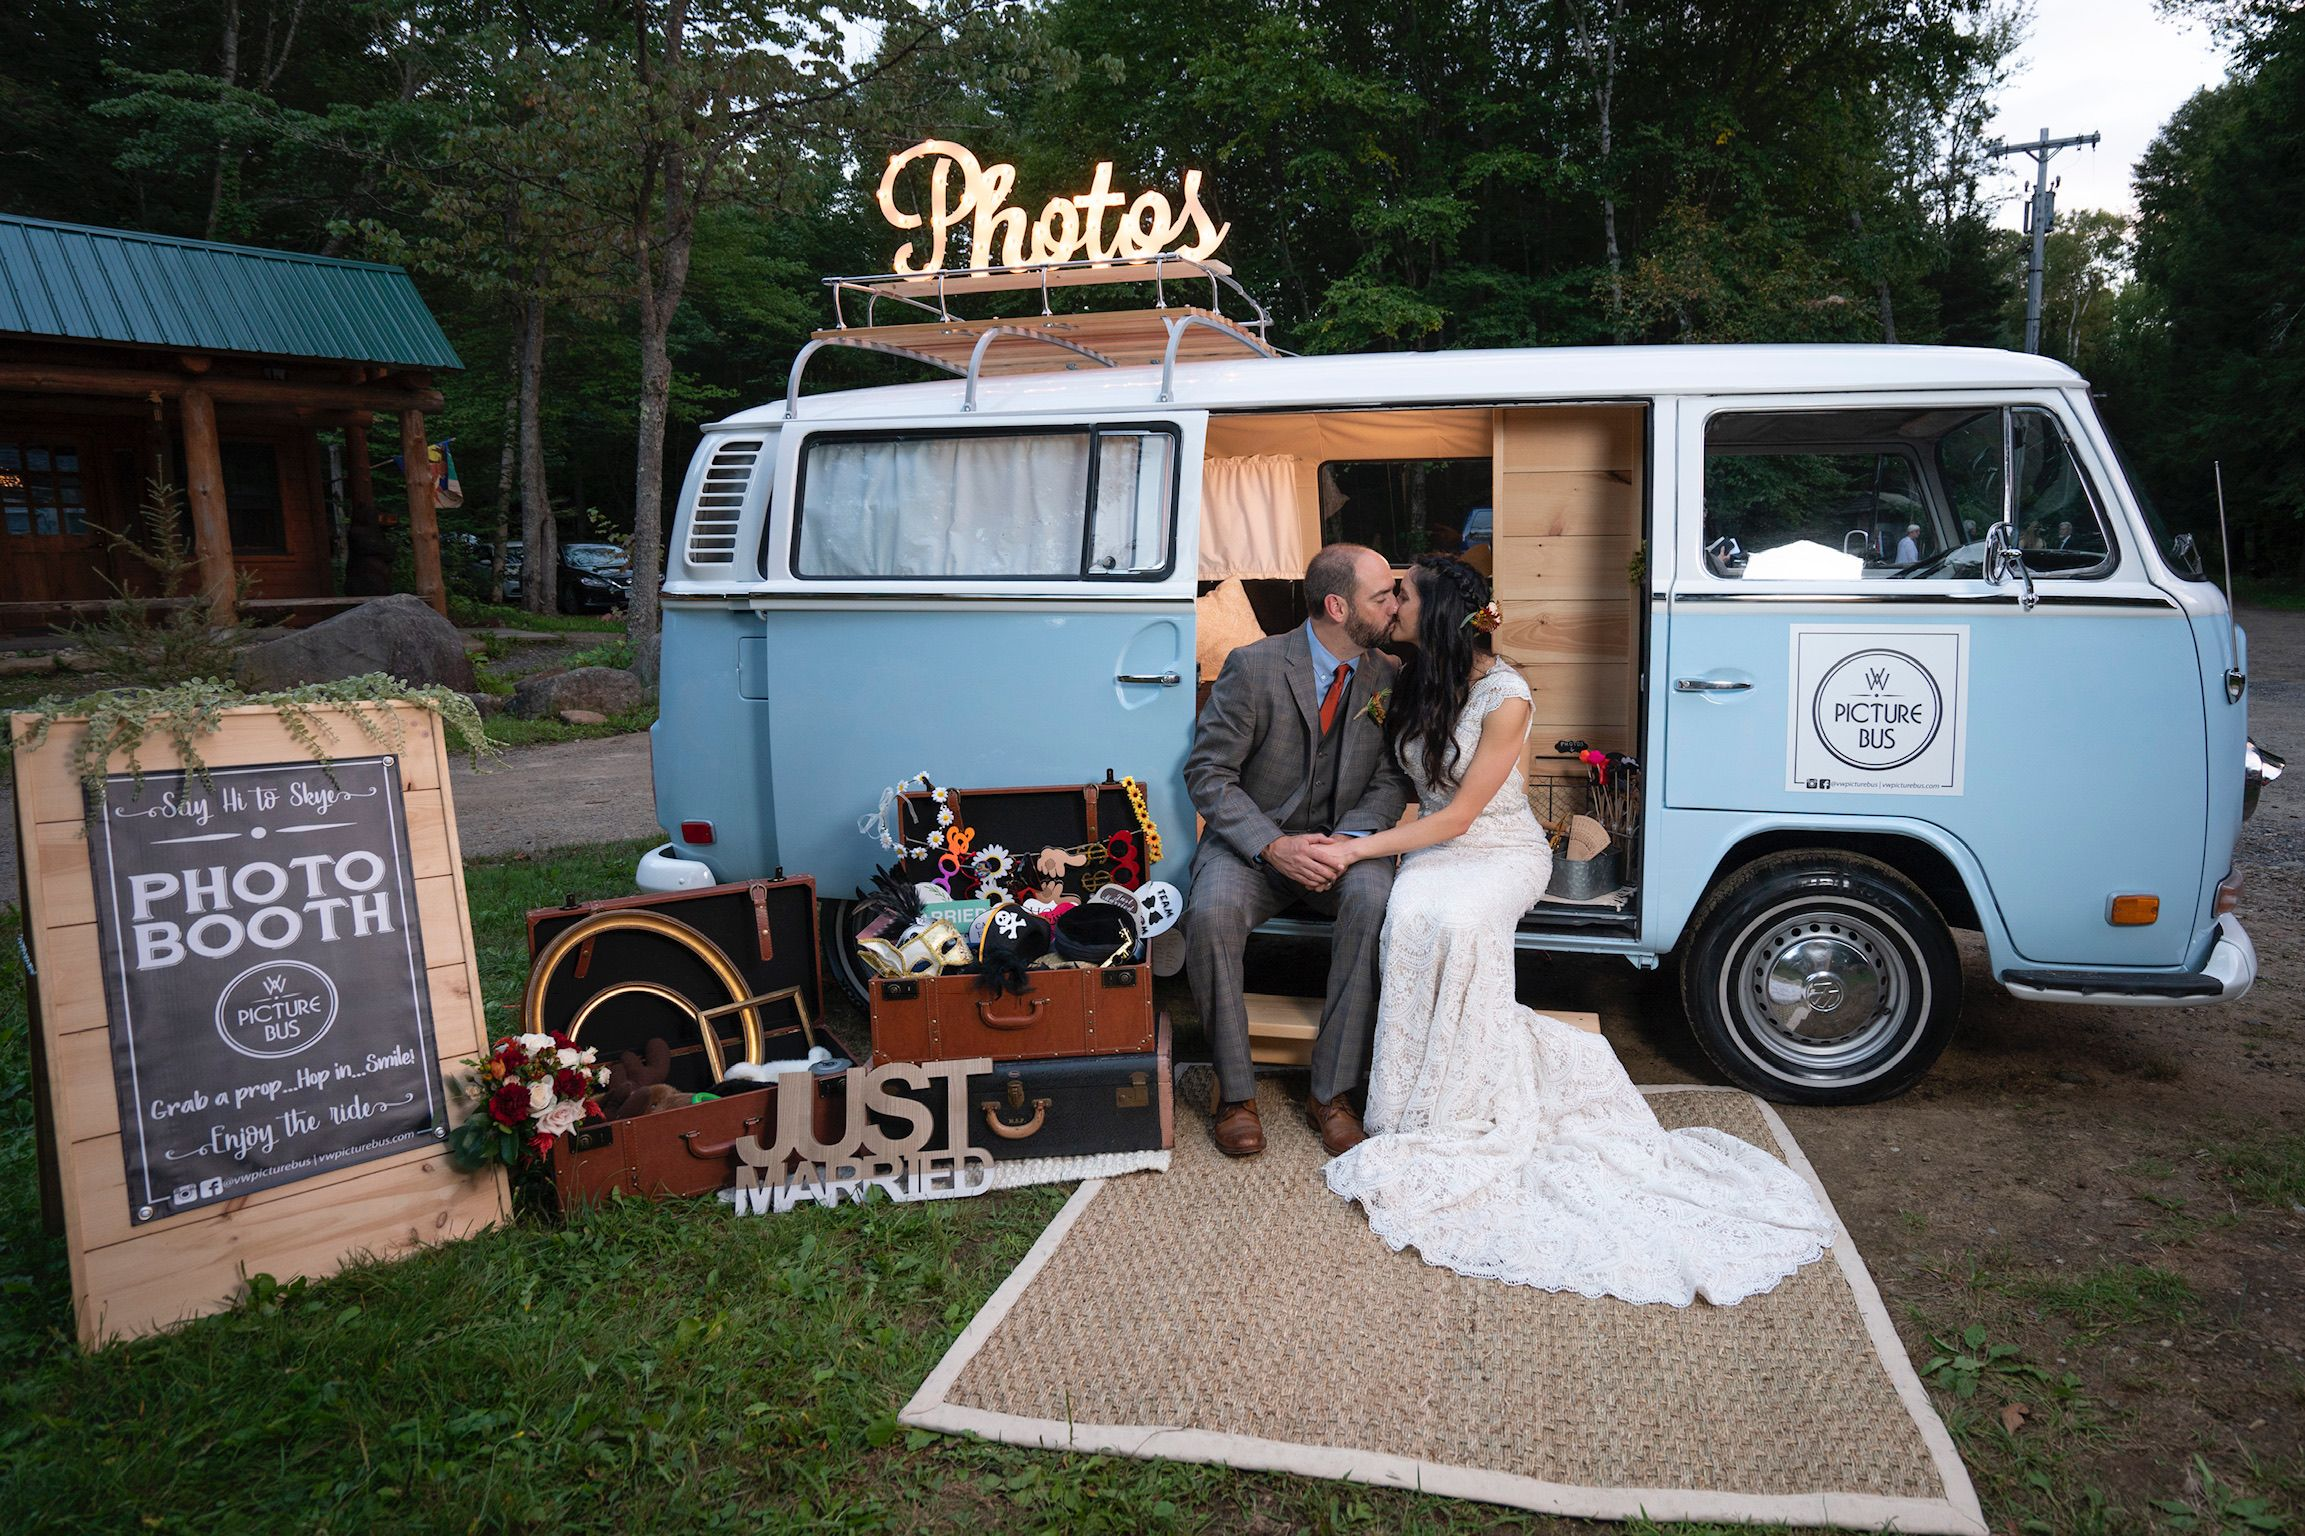 Bride and groom take picture with vw photo booth bus k